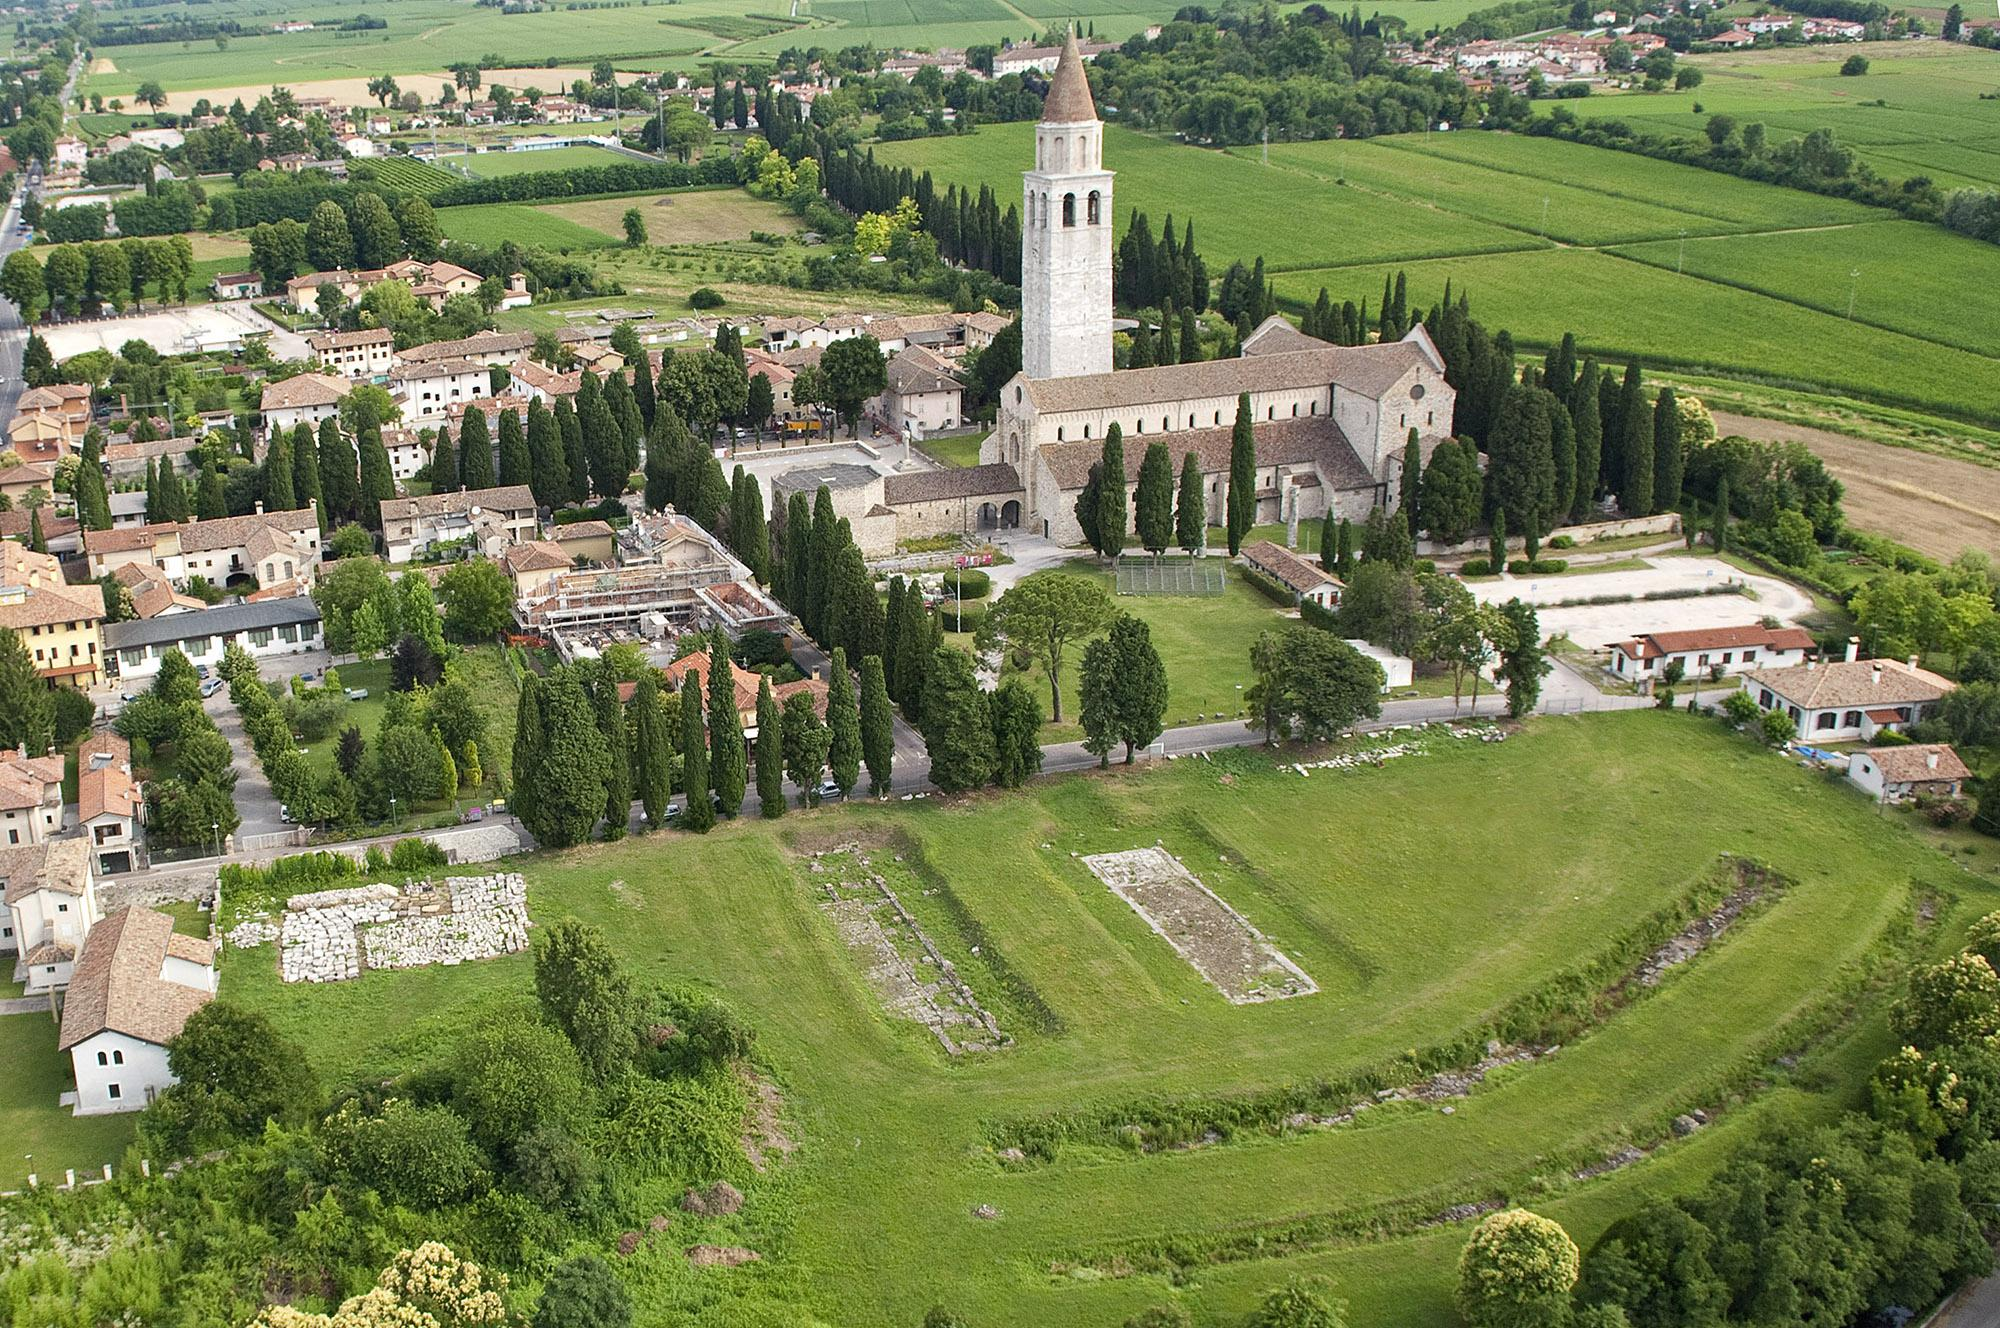 A bird's-eye view shows the historic centre of Aquileia, a World Heritage Site of UNESCO since 1998. The Basilica and archaeological area rank among Italy's most important Roman sites. – © Gianluca Baronchelli